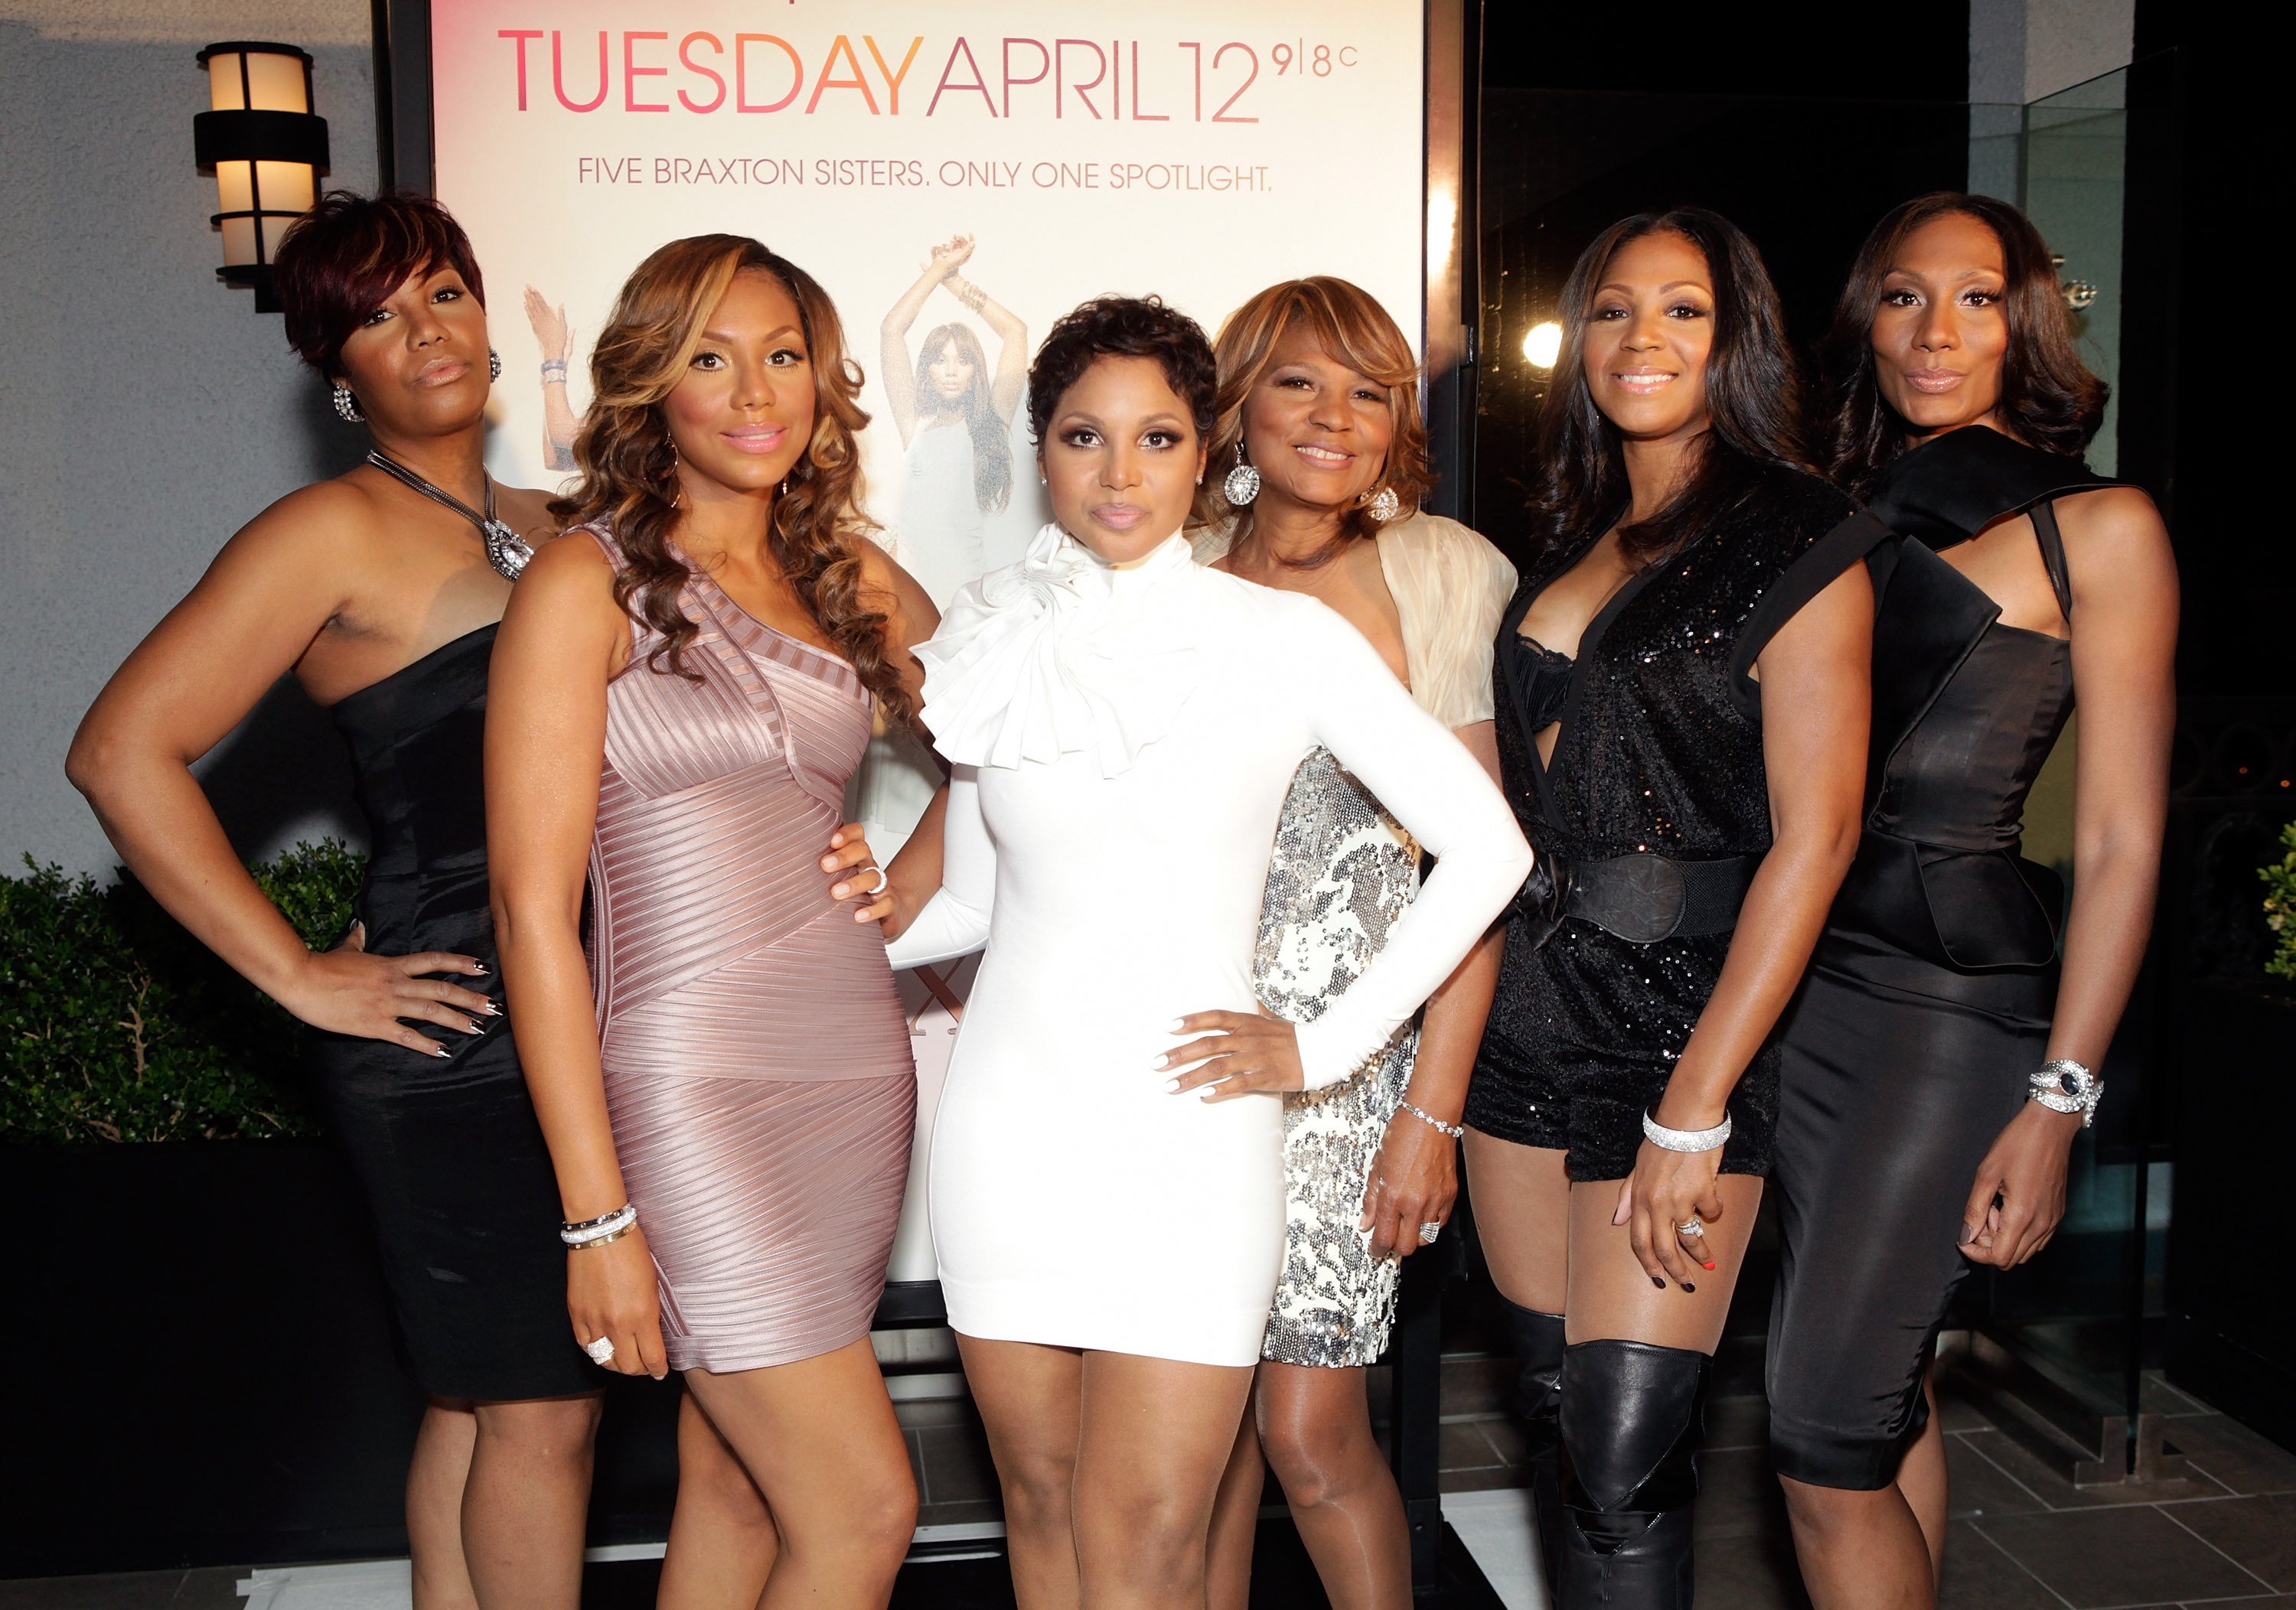 Traci Braxton, Tamar Braxton, Toni Braxton, Evelyn Braxton, Trina Braxton & Towanda Braxton in West Hollywood on April 6, 2011. | Photo: Getty Images